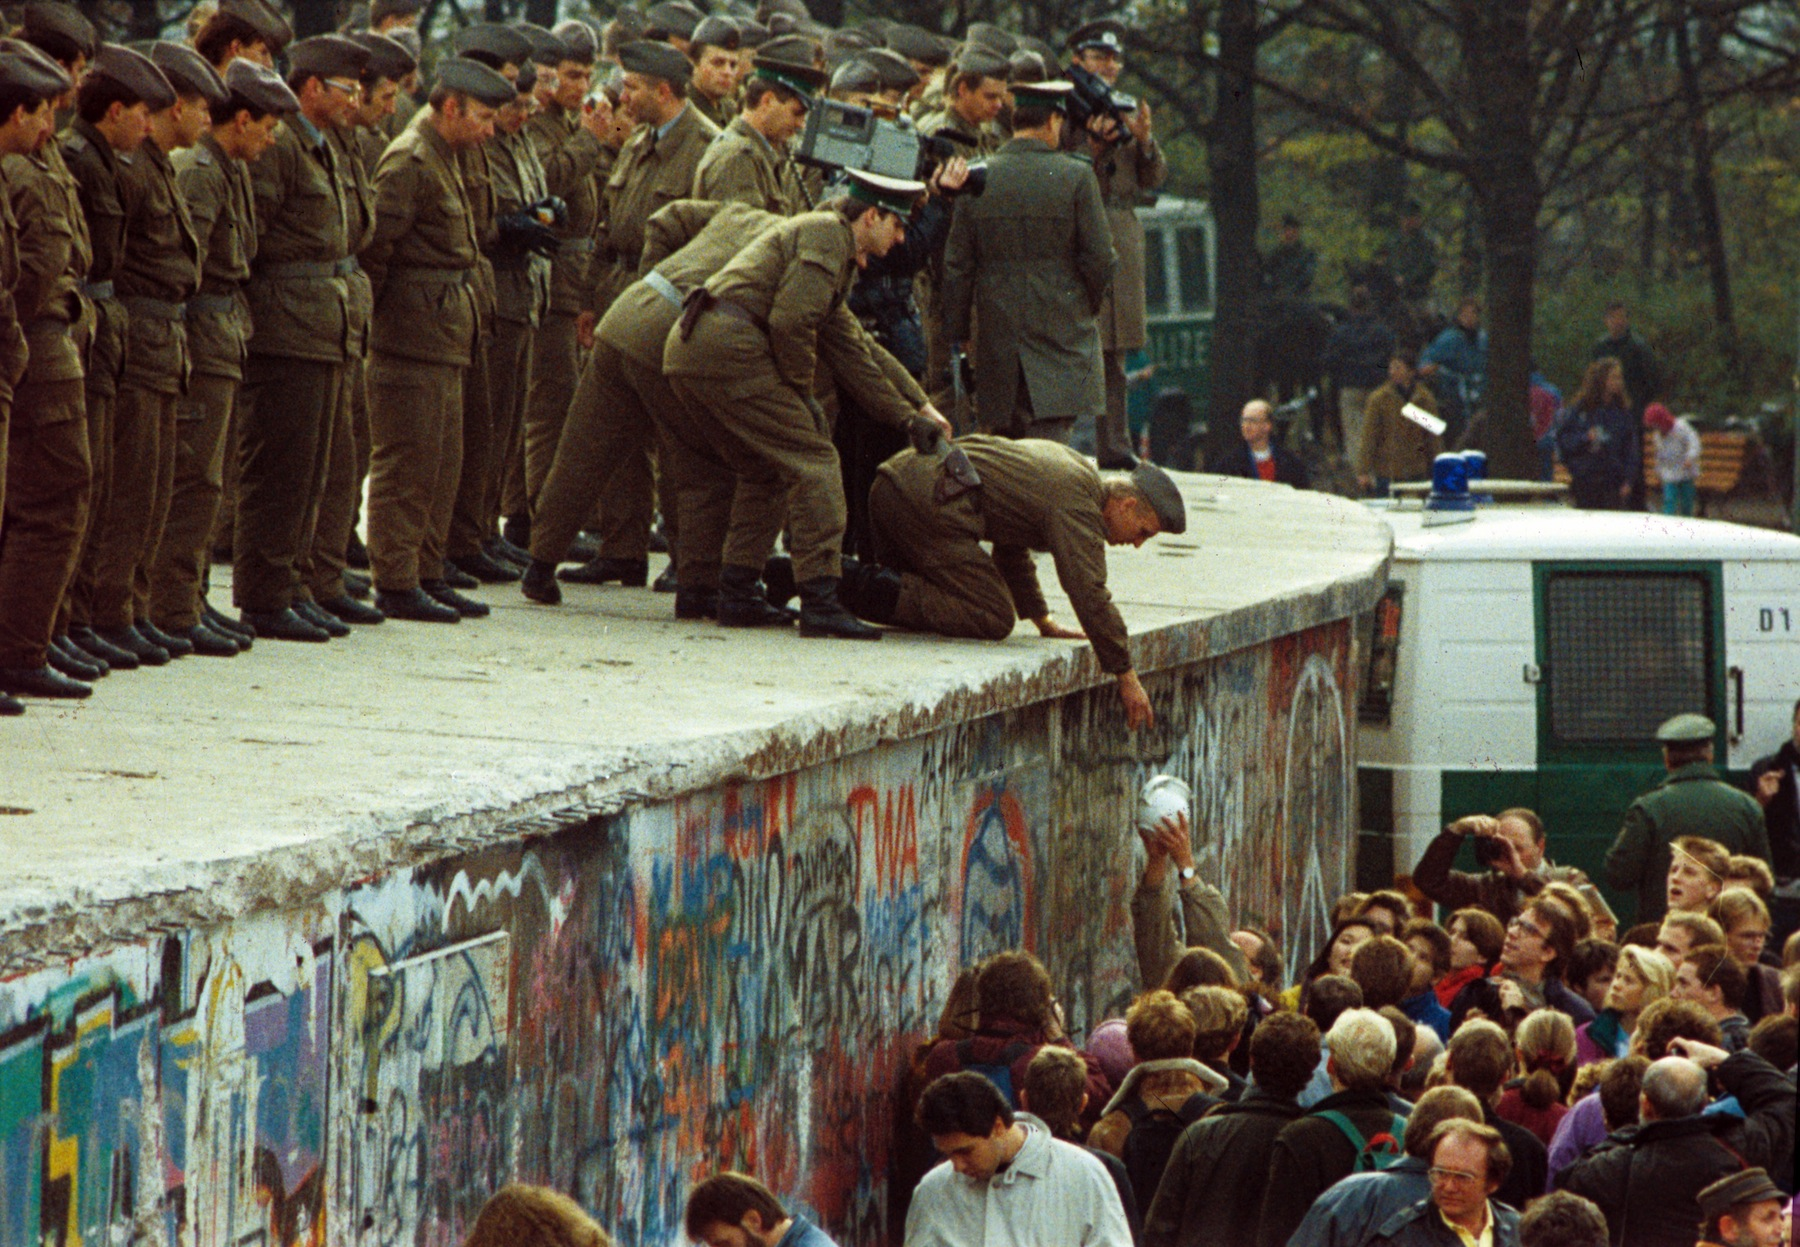 Citizens of West Berlin hand a pot of coffee to GDR border forces on the Berlin Wall on Nov. 11, 1989.